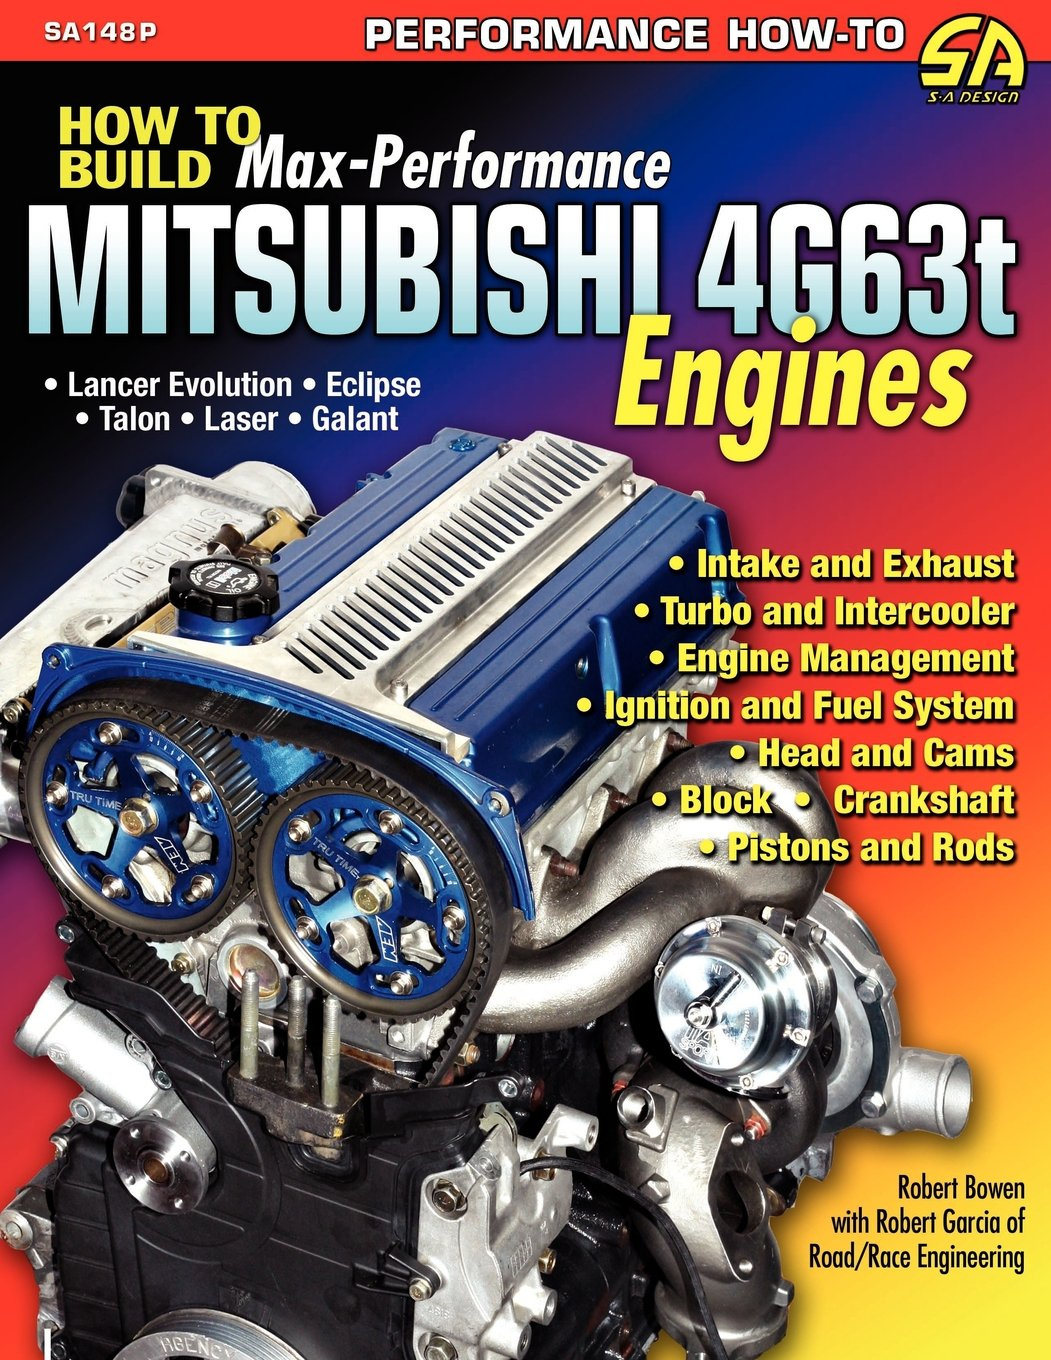 1998 Eagle Talon Engine Diagram Wiring Starter 1990 Awd 1995 Libraryhow To Build Max Performance Mitsubishi 4g63t Engines Robert Bowen